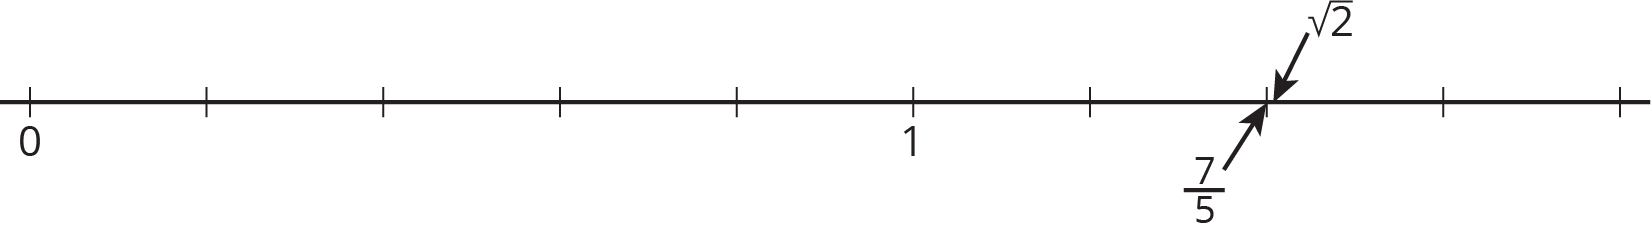 A number line with 10 evenly spaced tick marks. The first tick mark is labeled 0 and the sixth tick mark is labeled 1. An arrow points to the eighth tick mark and is labeled seven-fifths. A second arrow points to a point slightly to the right of the eighth tick mark and is labeled the square root of 2.